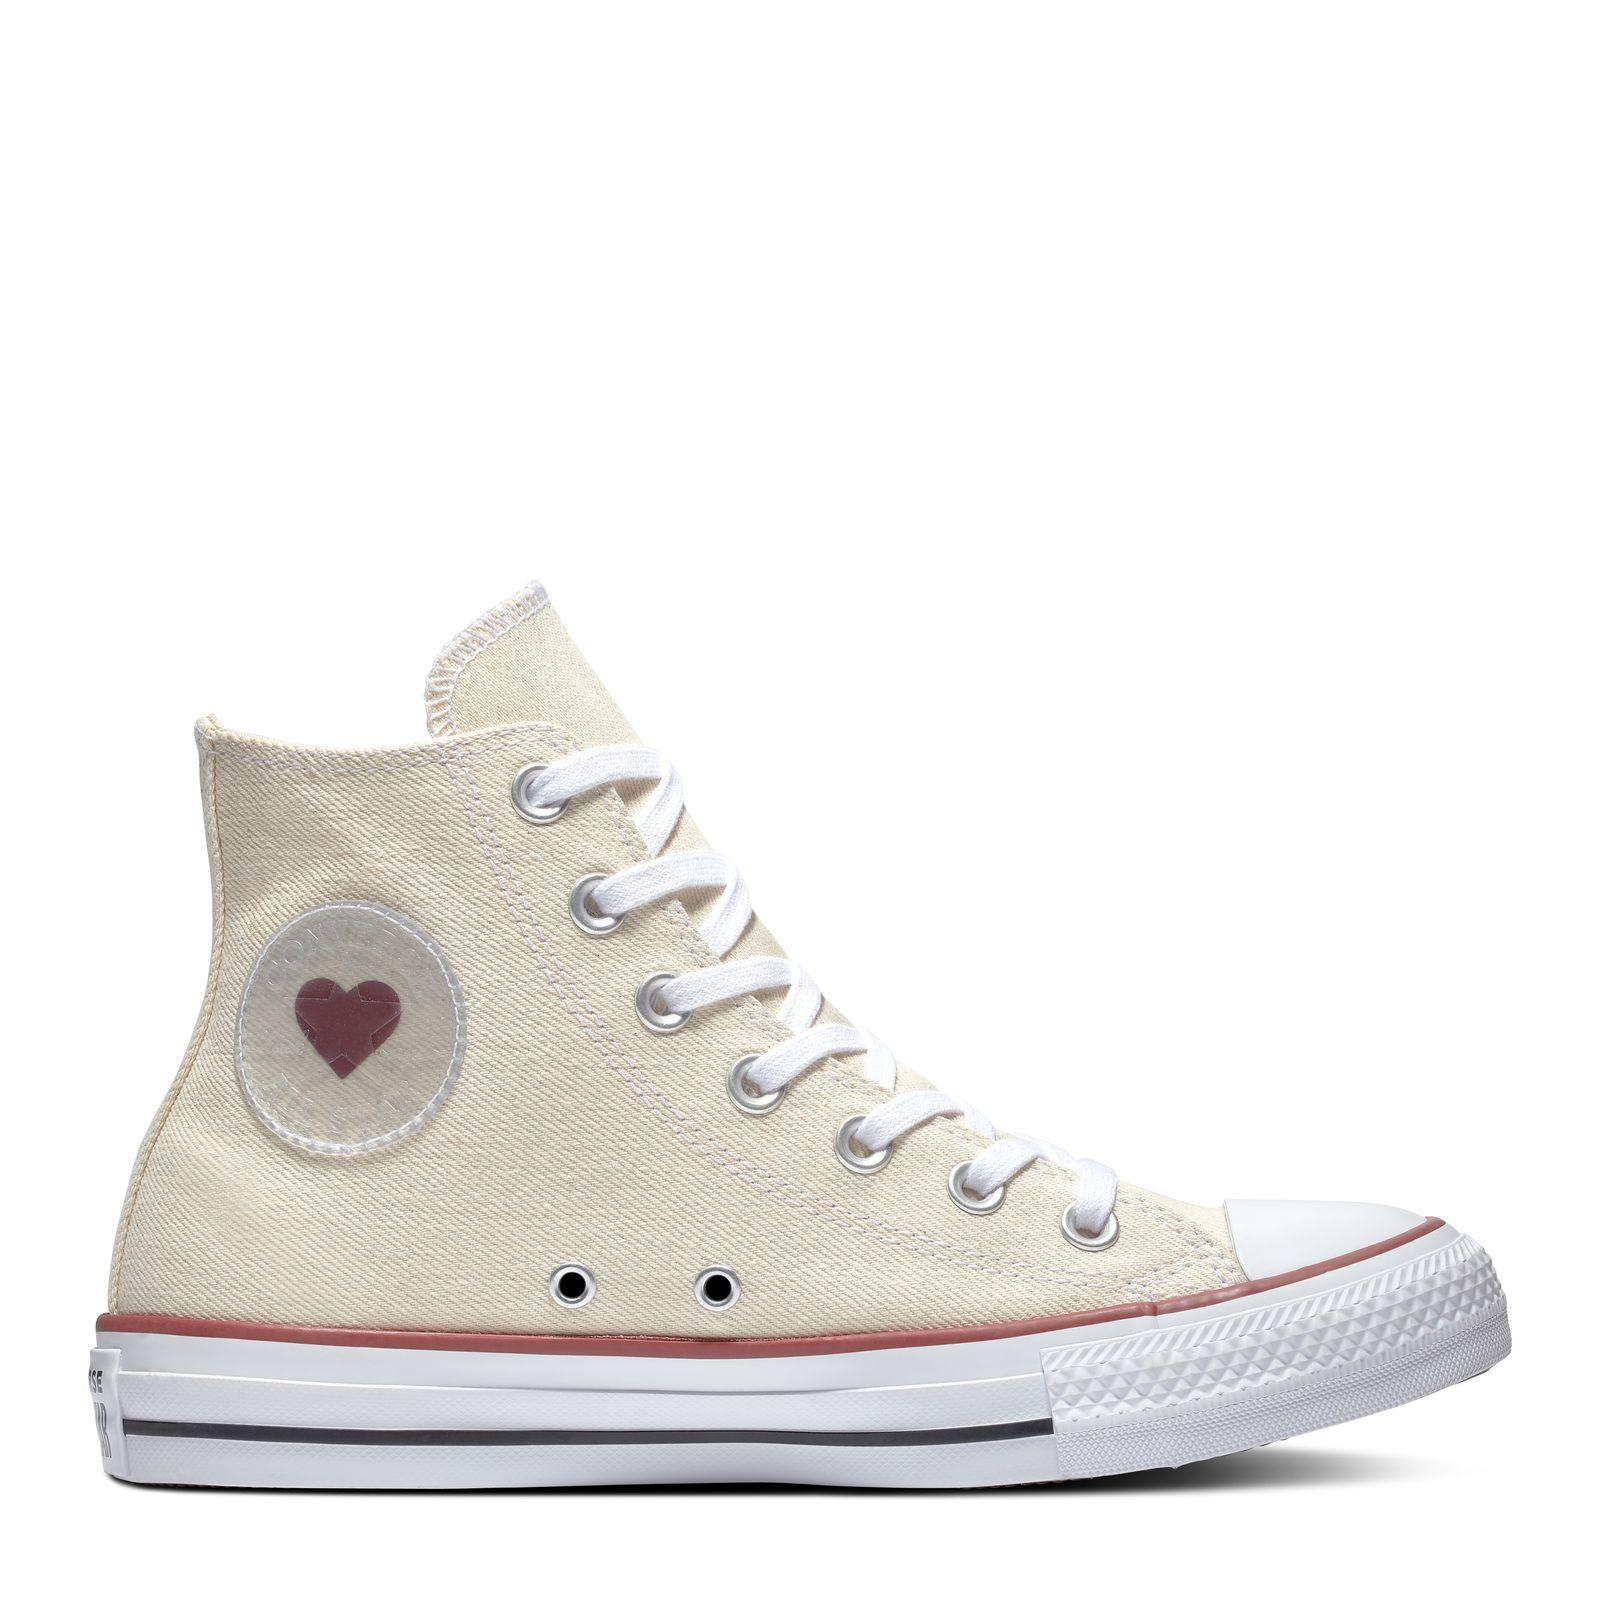 f9cb4635ea32 CONVERSE CHUCK TAYLOR ALL STAR DENIM LOVE HI - NATURAL WHITE GARNET -  163304C